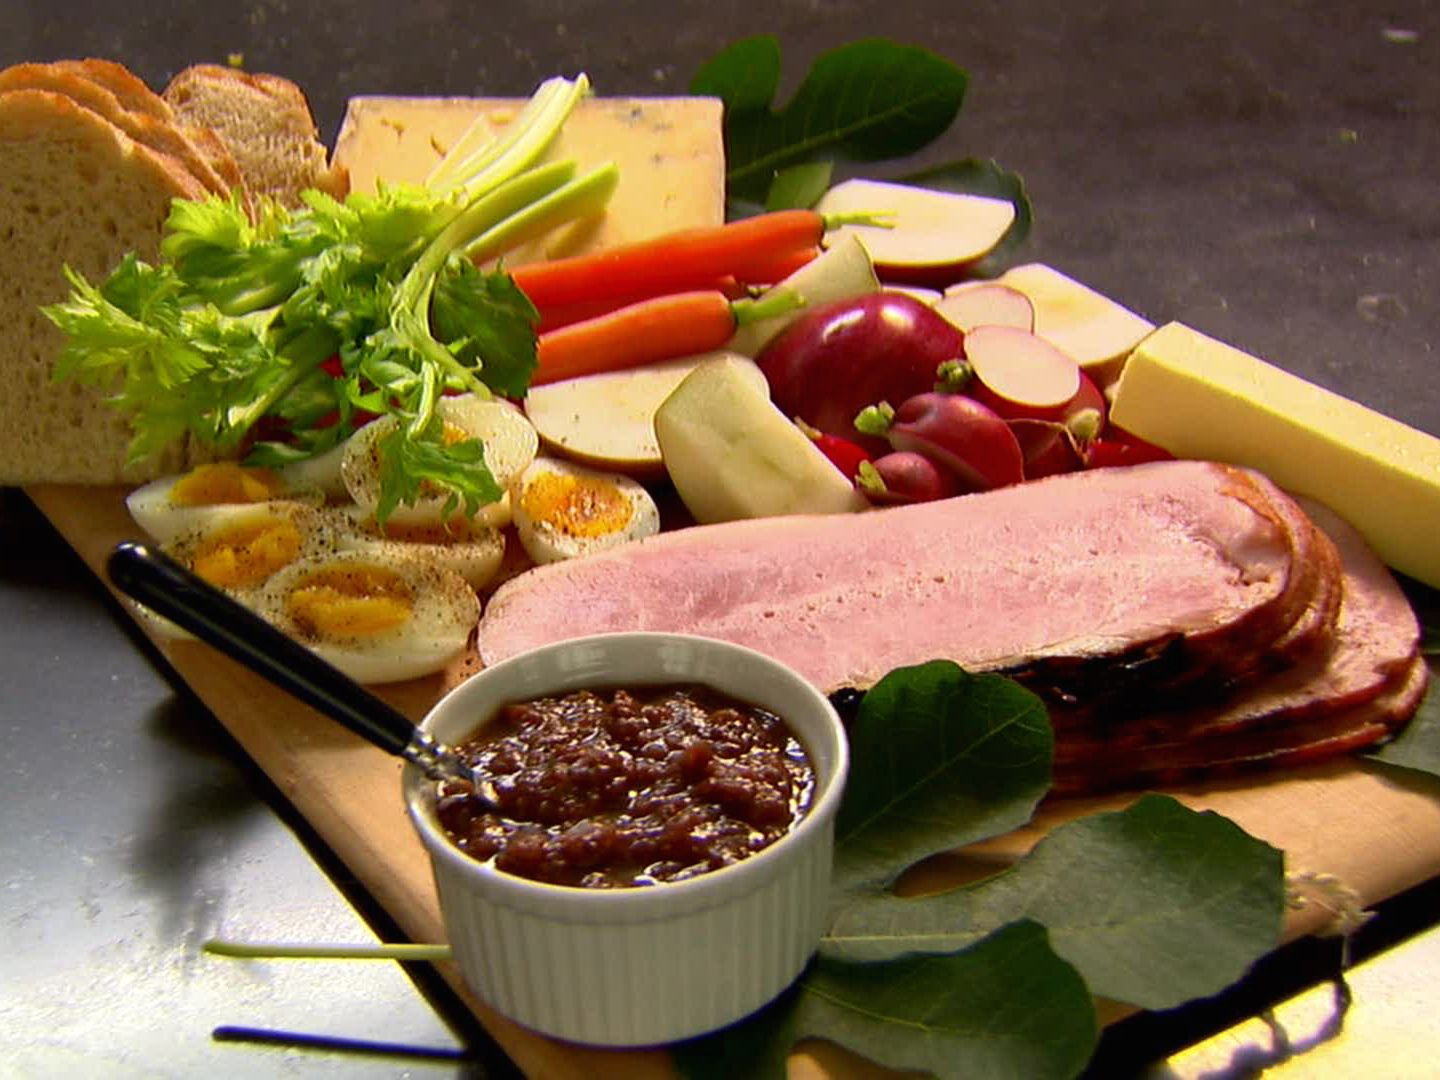 Ploughmans lunch recipe ina garten barefoot contessa and lunches forumfinder Images